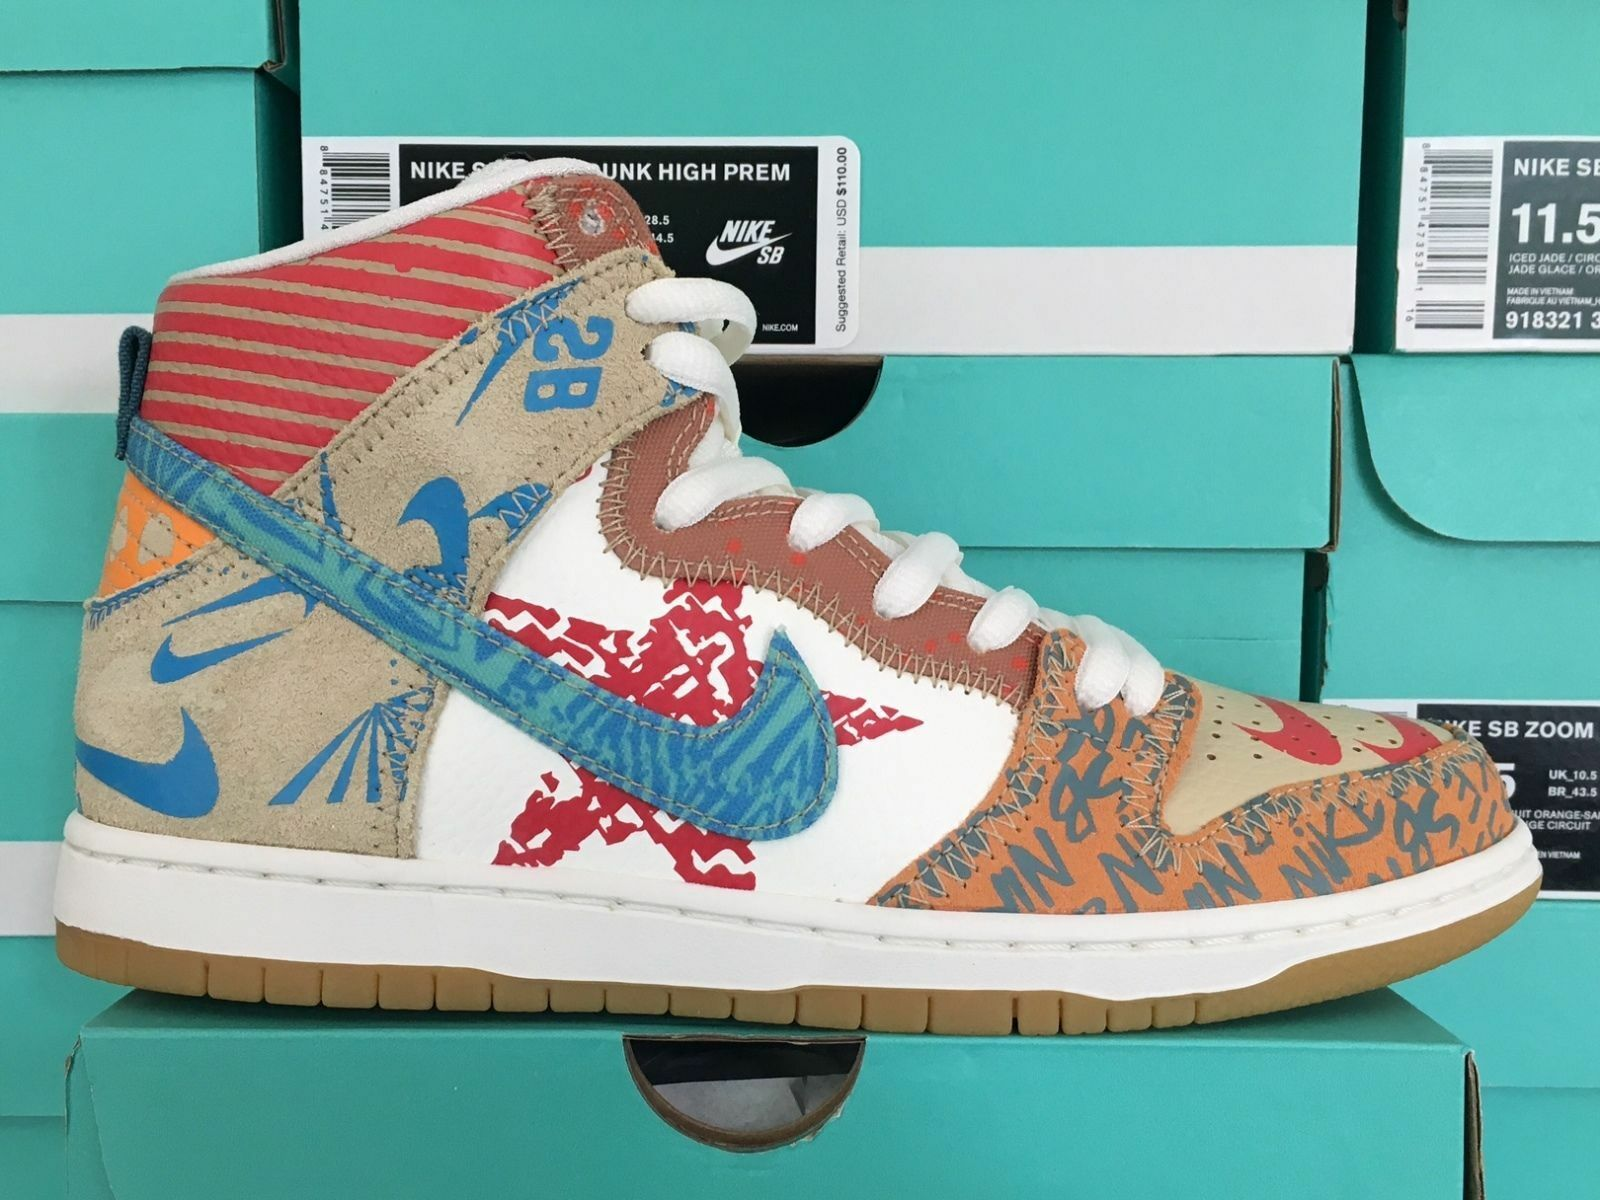 Nike SB ZOOM Dunk High What The Thomas Campbell Limited 918321-381 Ice Jade Sail